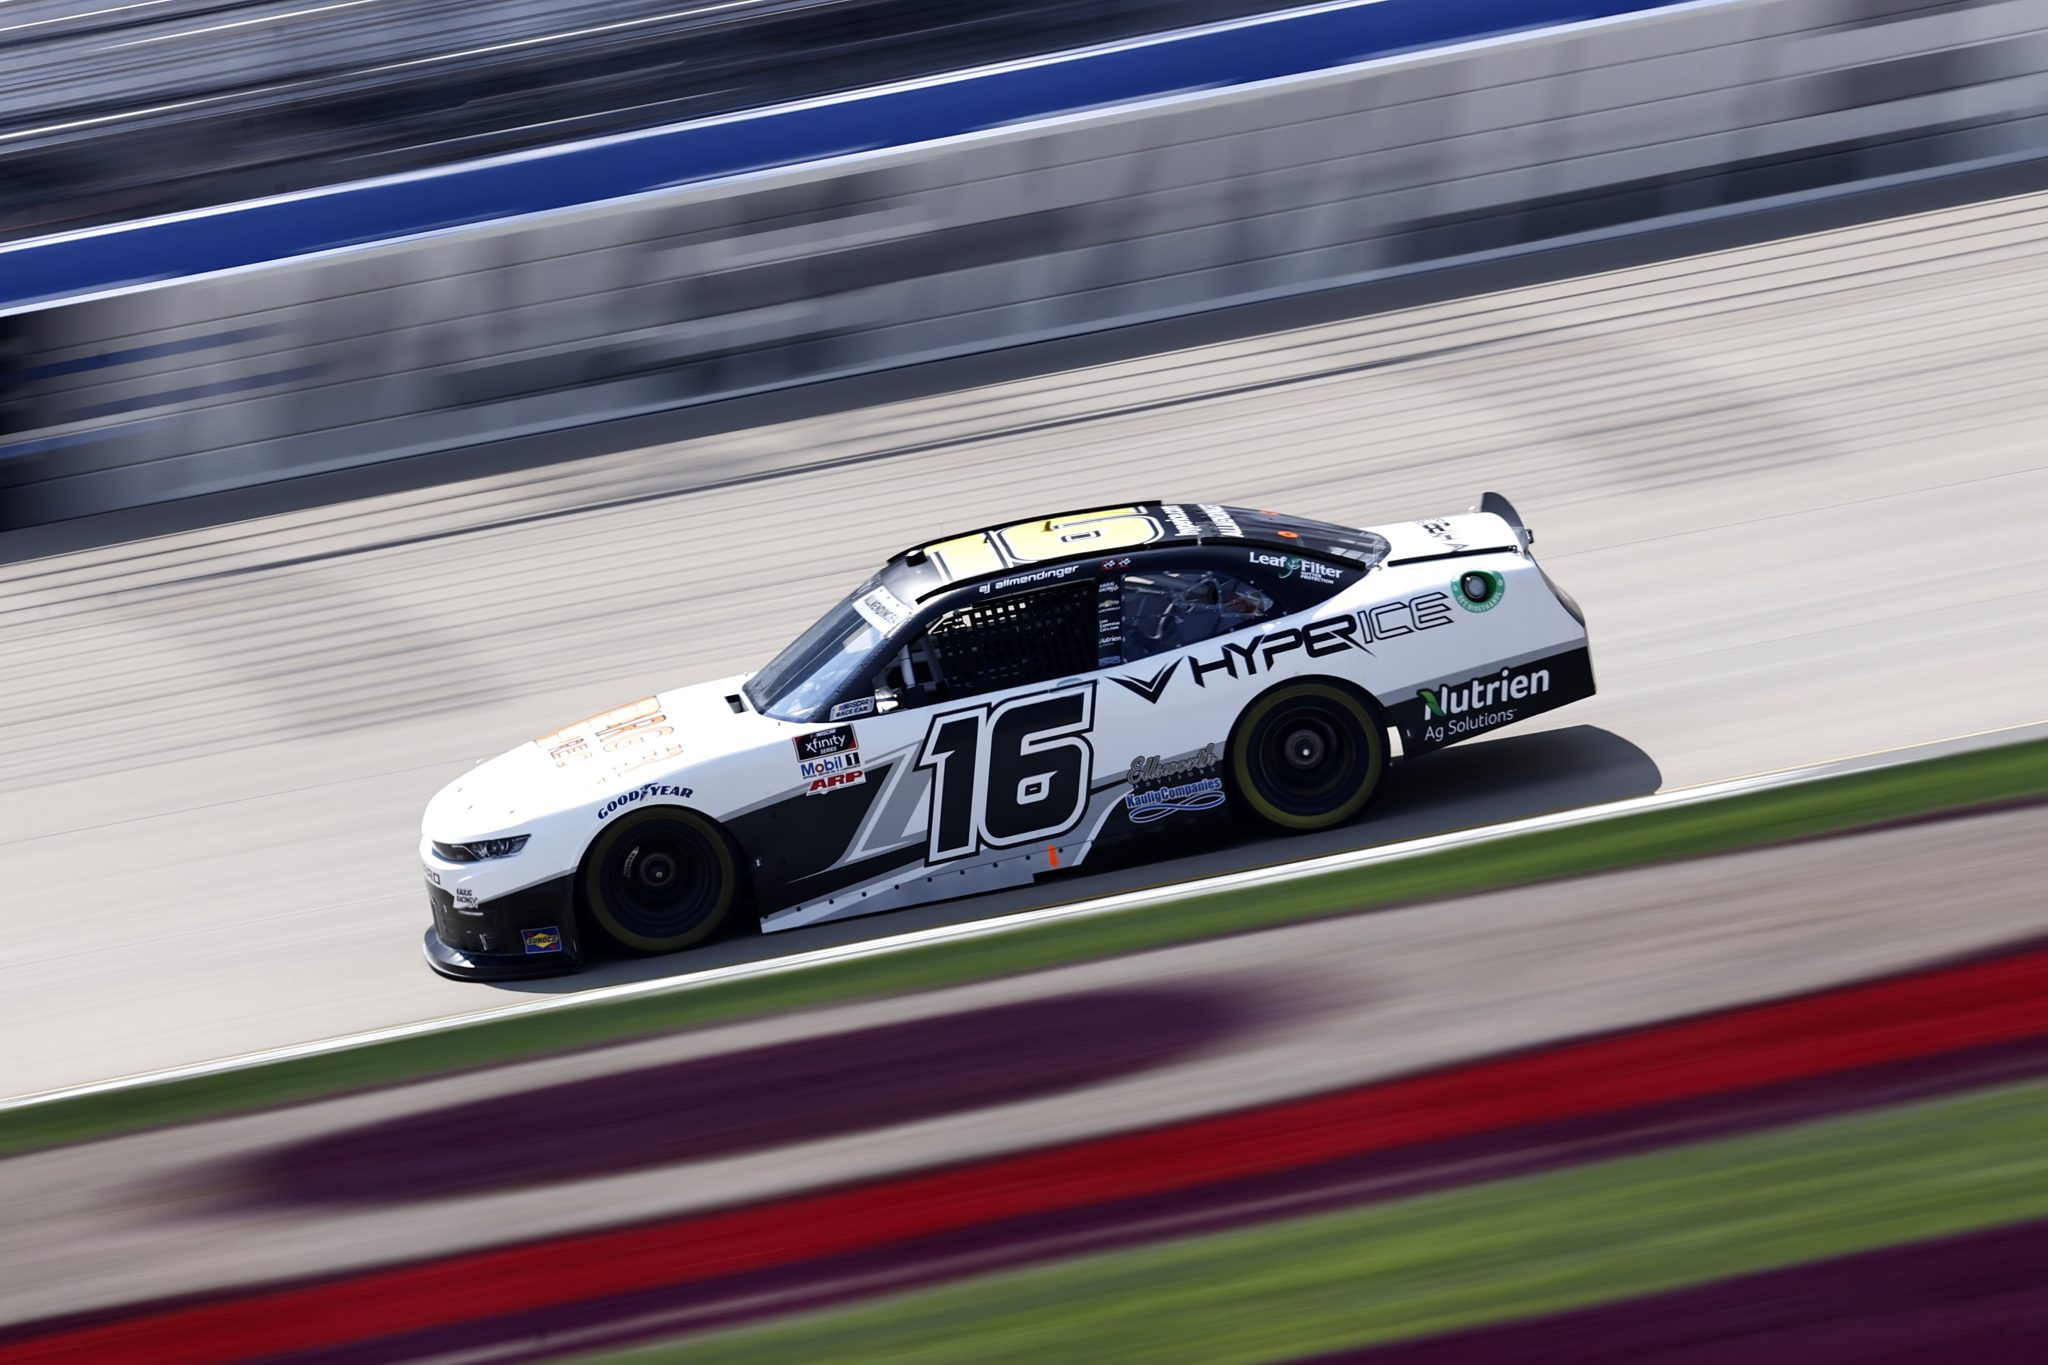 LEBANON, TENNESSEE - JUNE 18: AJ Allmendinger, driver of the #16 Hyperice Chevrolet, drives during practice for the NASCAR Xfinity Series Tennessee Lottery 250 at Nashville Superspeedway on June 18, 2021 in Lebanon, Tennessee. (Photo by Jared C. Tilton/Getty Images) | Getty Images